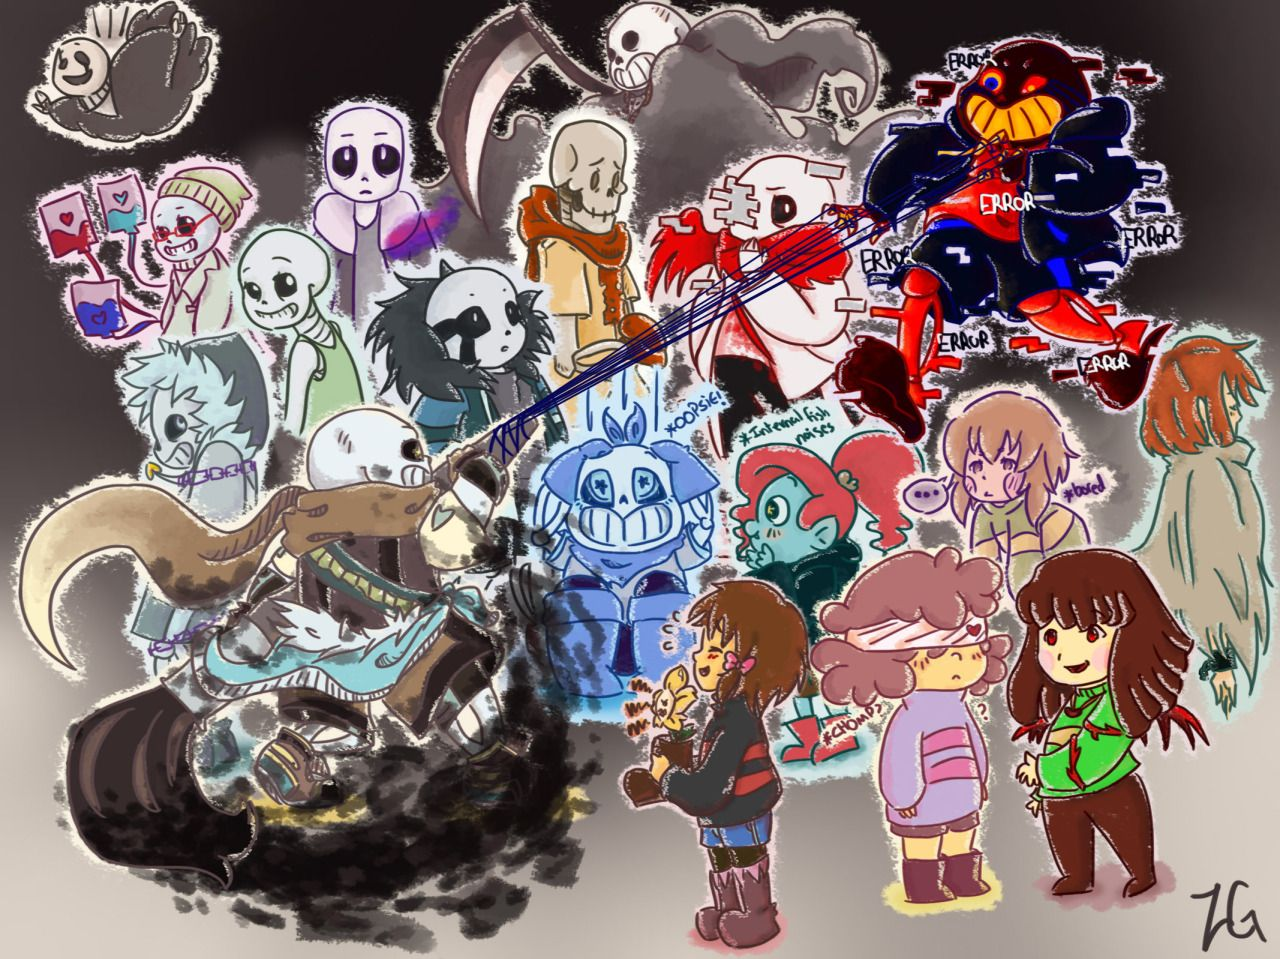 Jakei95 Judgyknowitall To All The Amazing Undertale Au